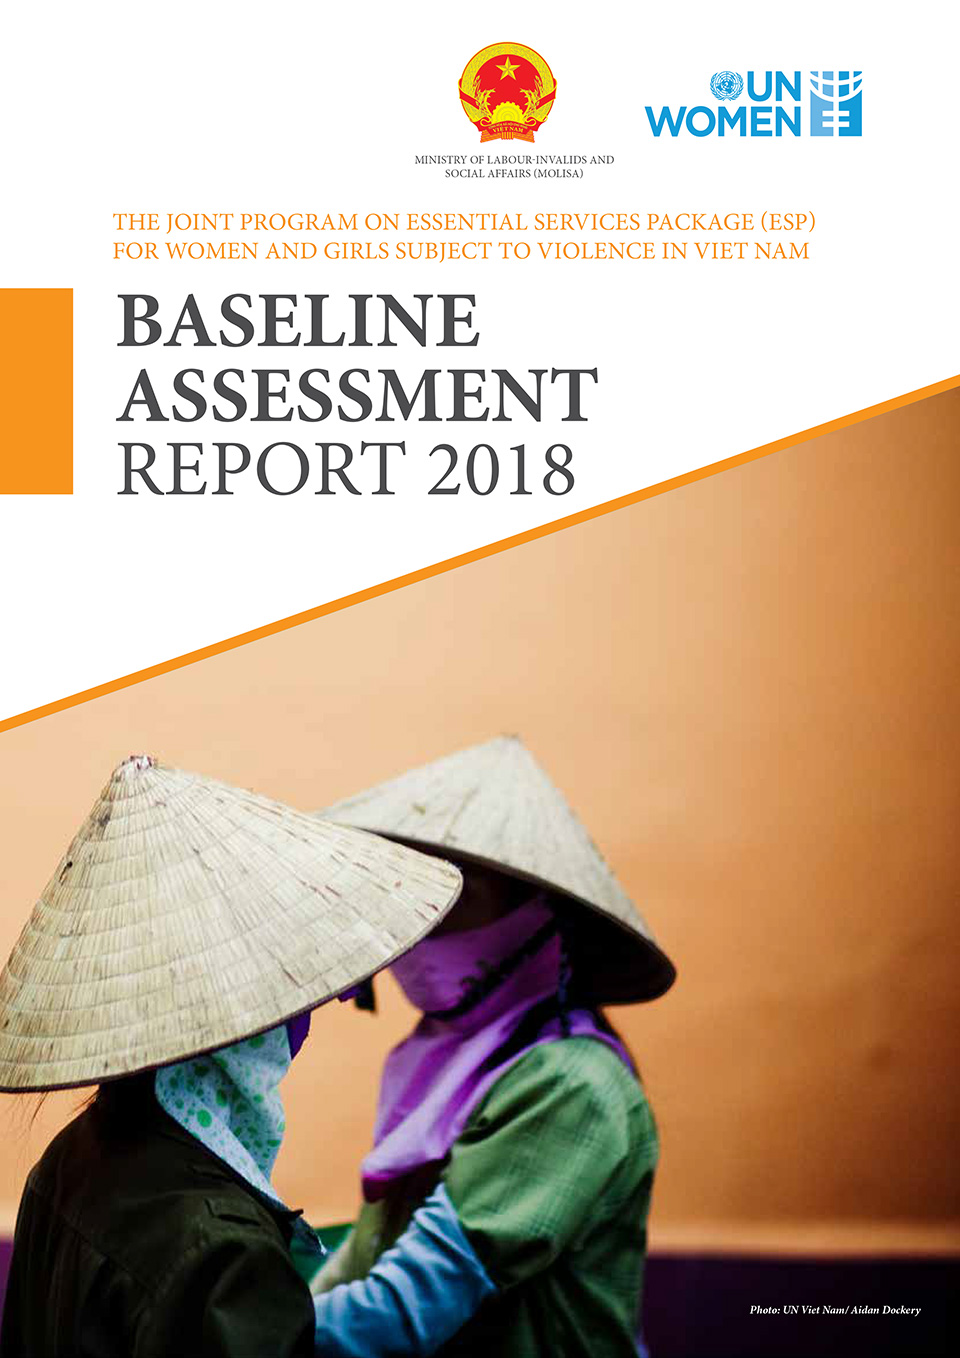 Essential Services Package  for Women and Girls subject to Violence - The Baseline Assessment Report in Viet Nam